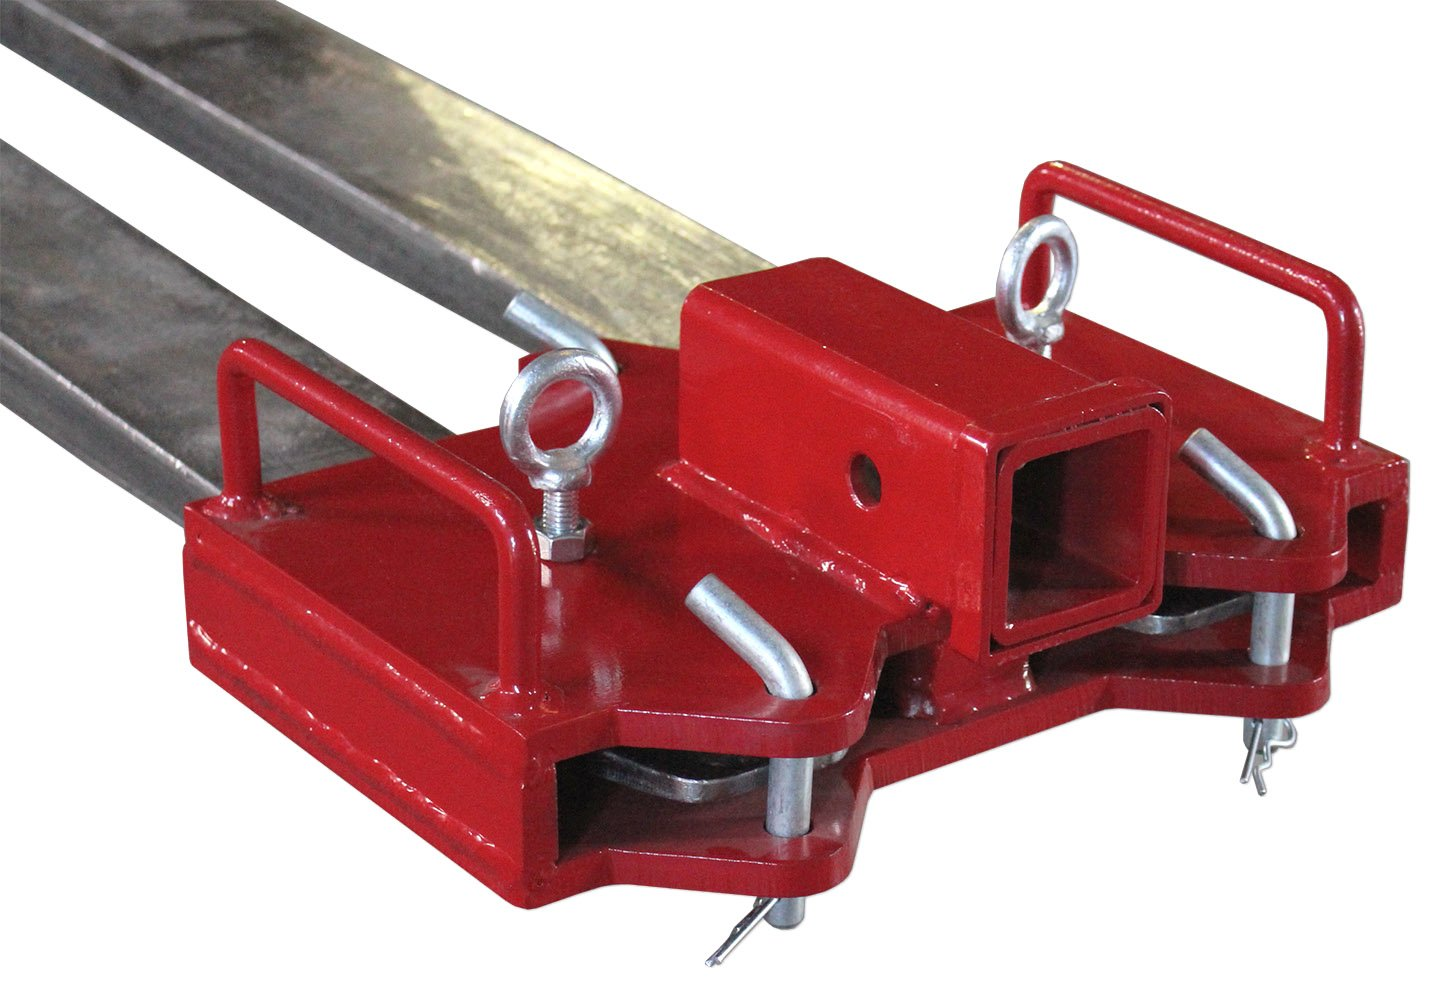 Titan Forklift 2'' Trailer Hitch Receiver for Dual Pallet Forks Towing Gooseneck